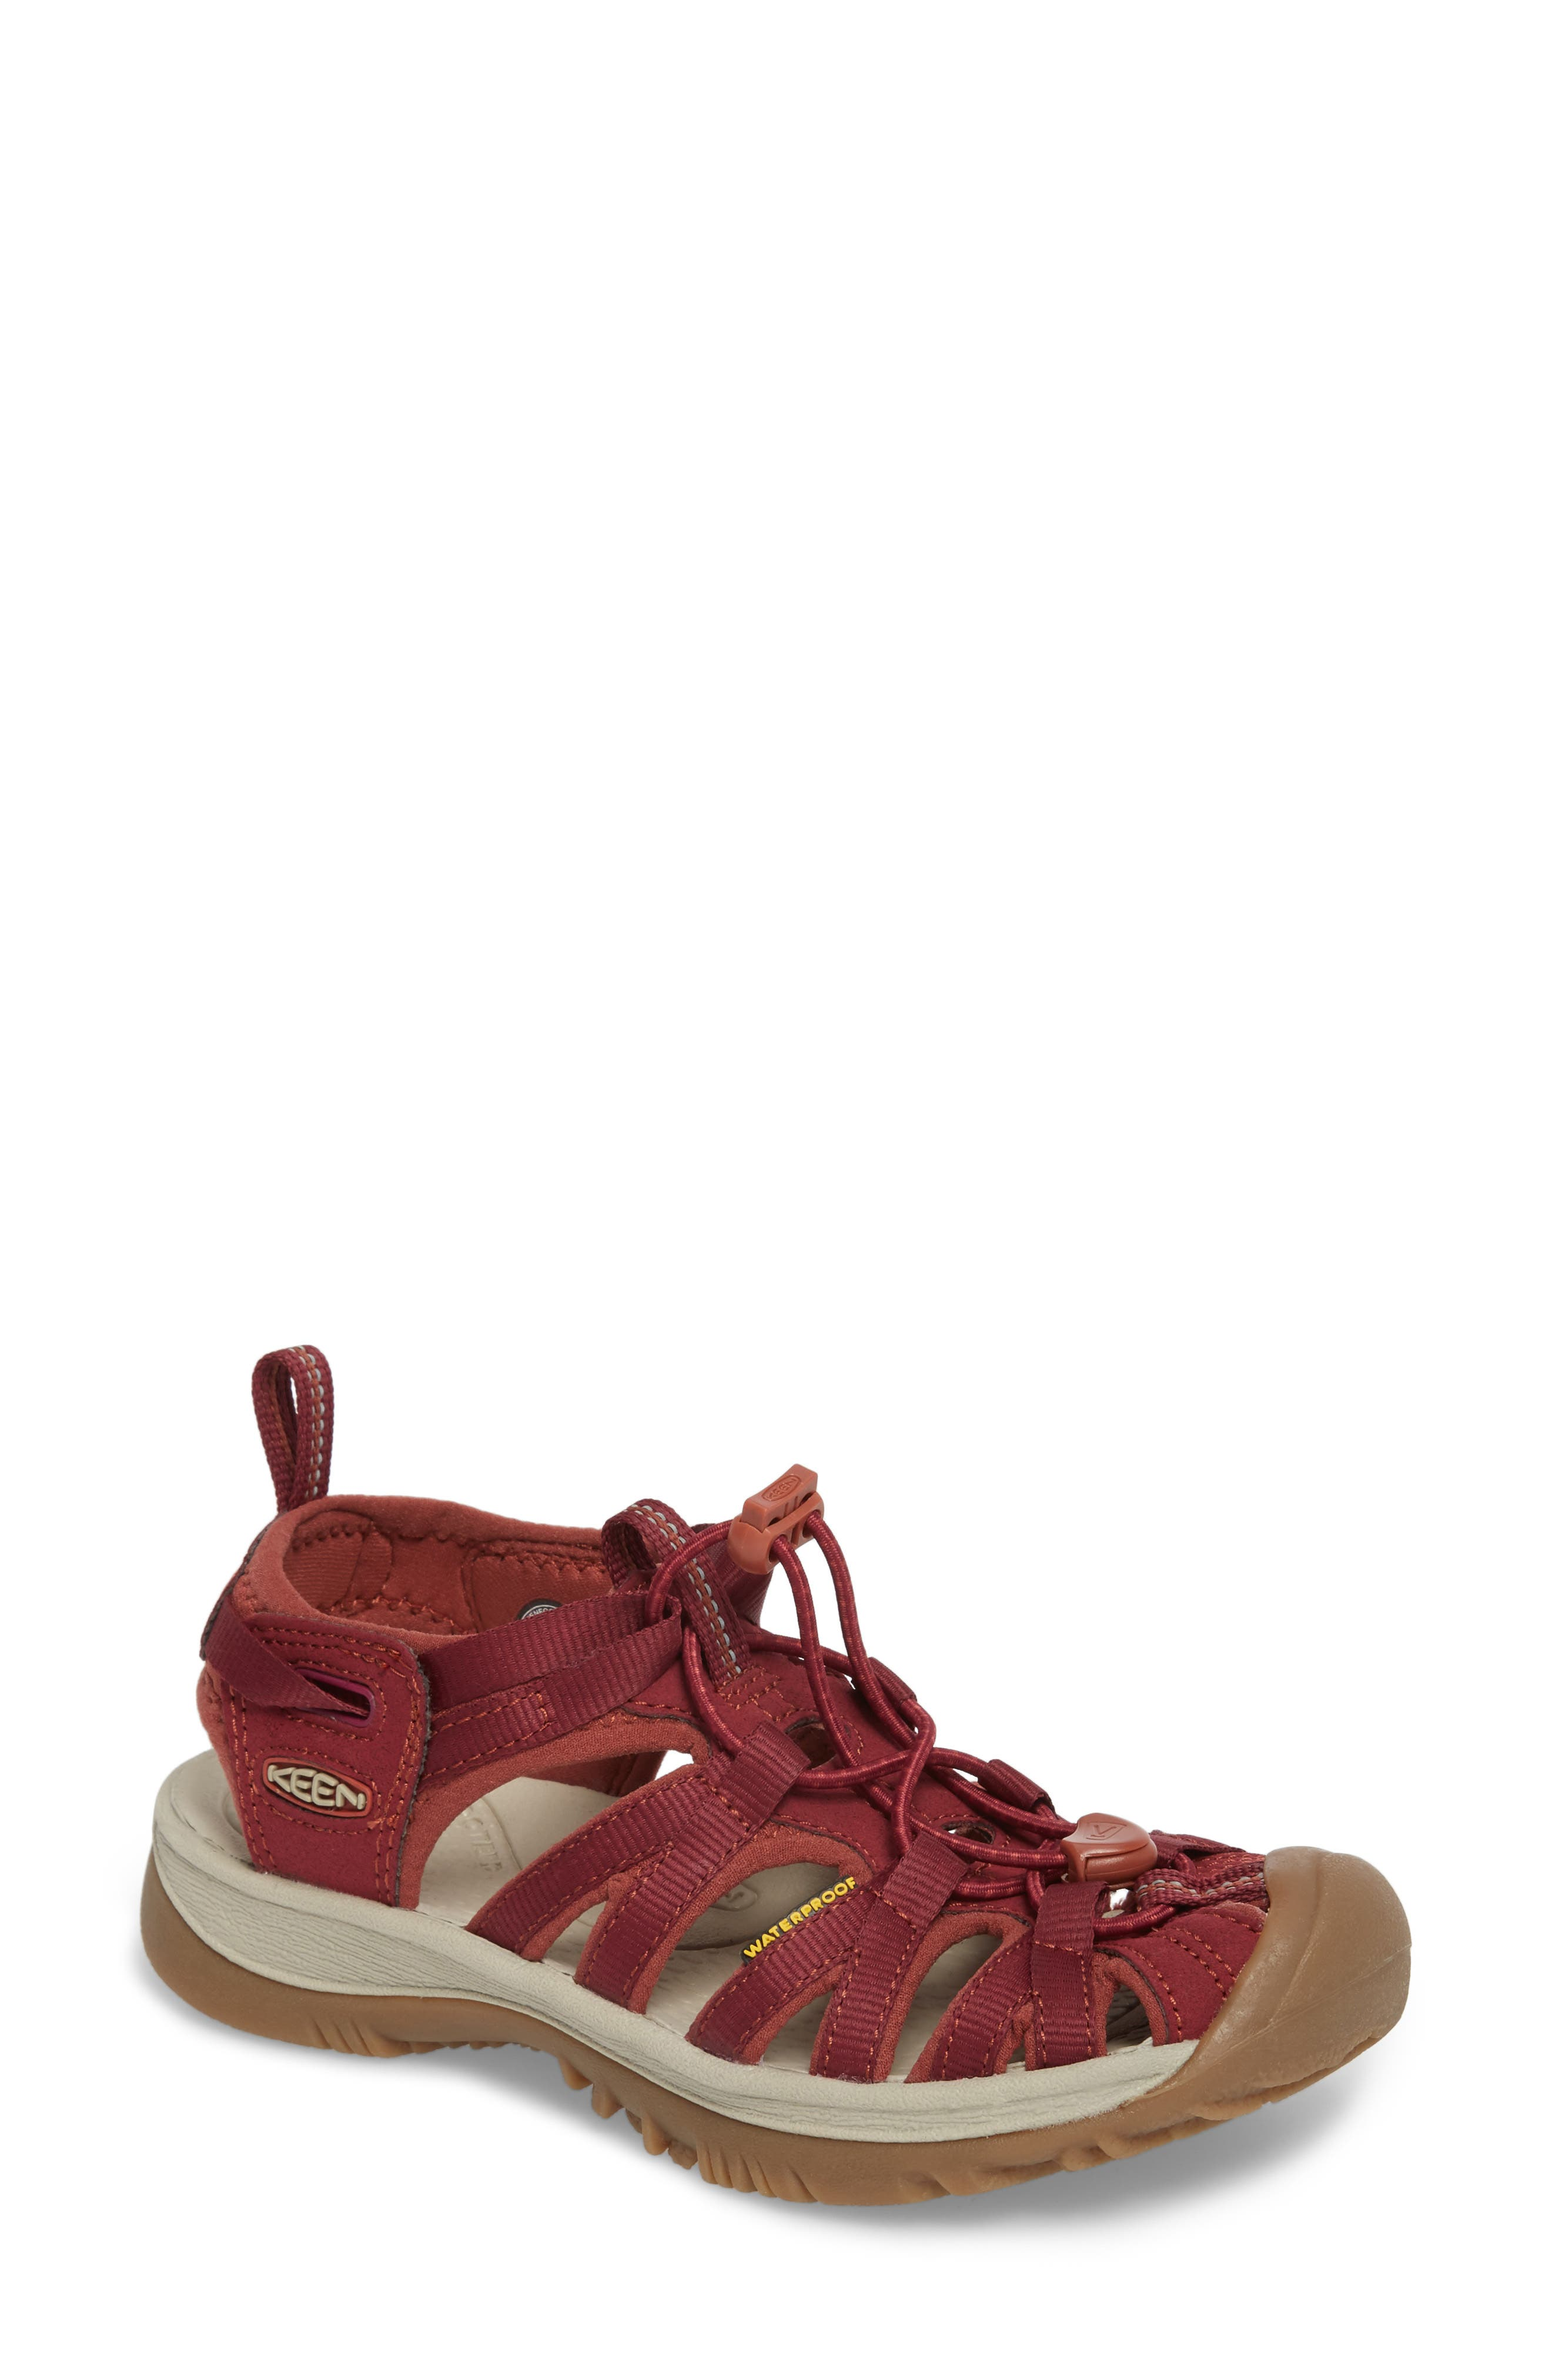 'Whisper' Water Friendly Sport Sandal,                             Main thumbnail 1, color,                             Rhododendron/ Marsala